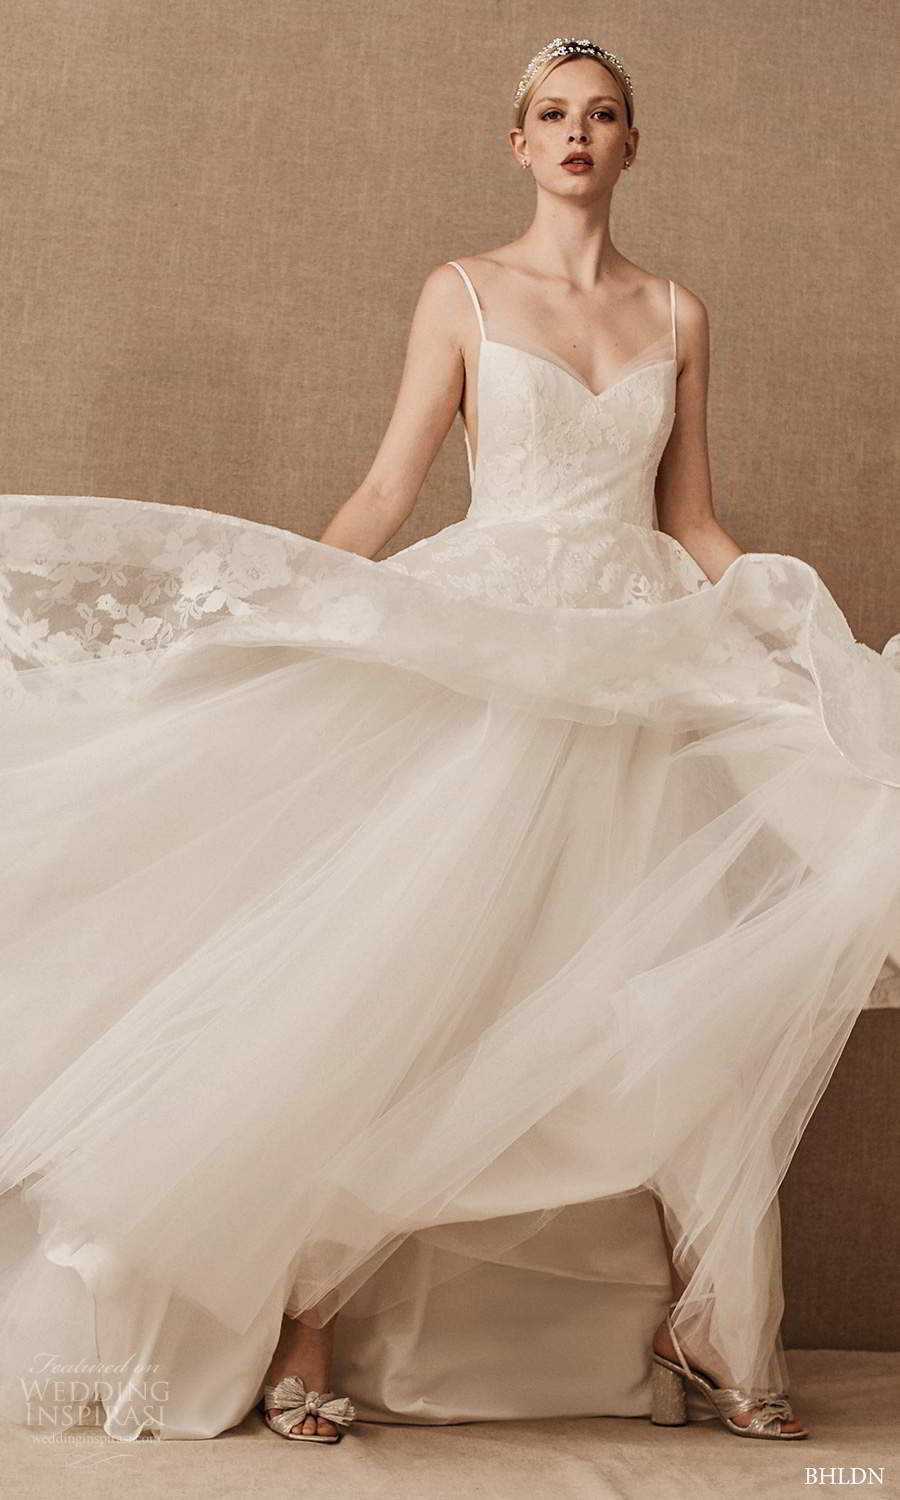 bhldn spring 2021 bridal sleeveless straps sweetheart neckline embellished bodice a line ball gown wedding dress chapel train (1) fv